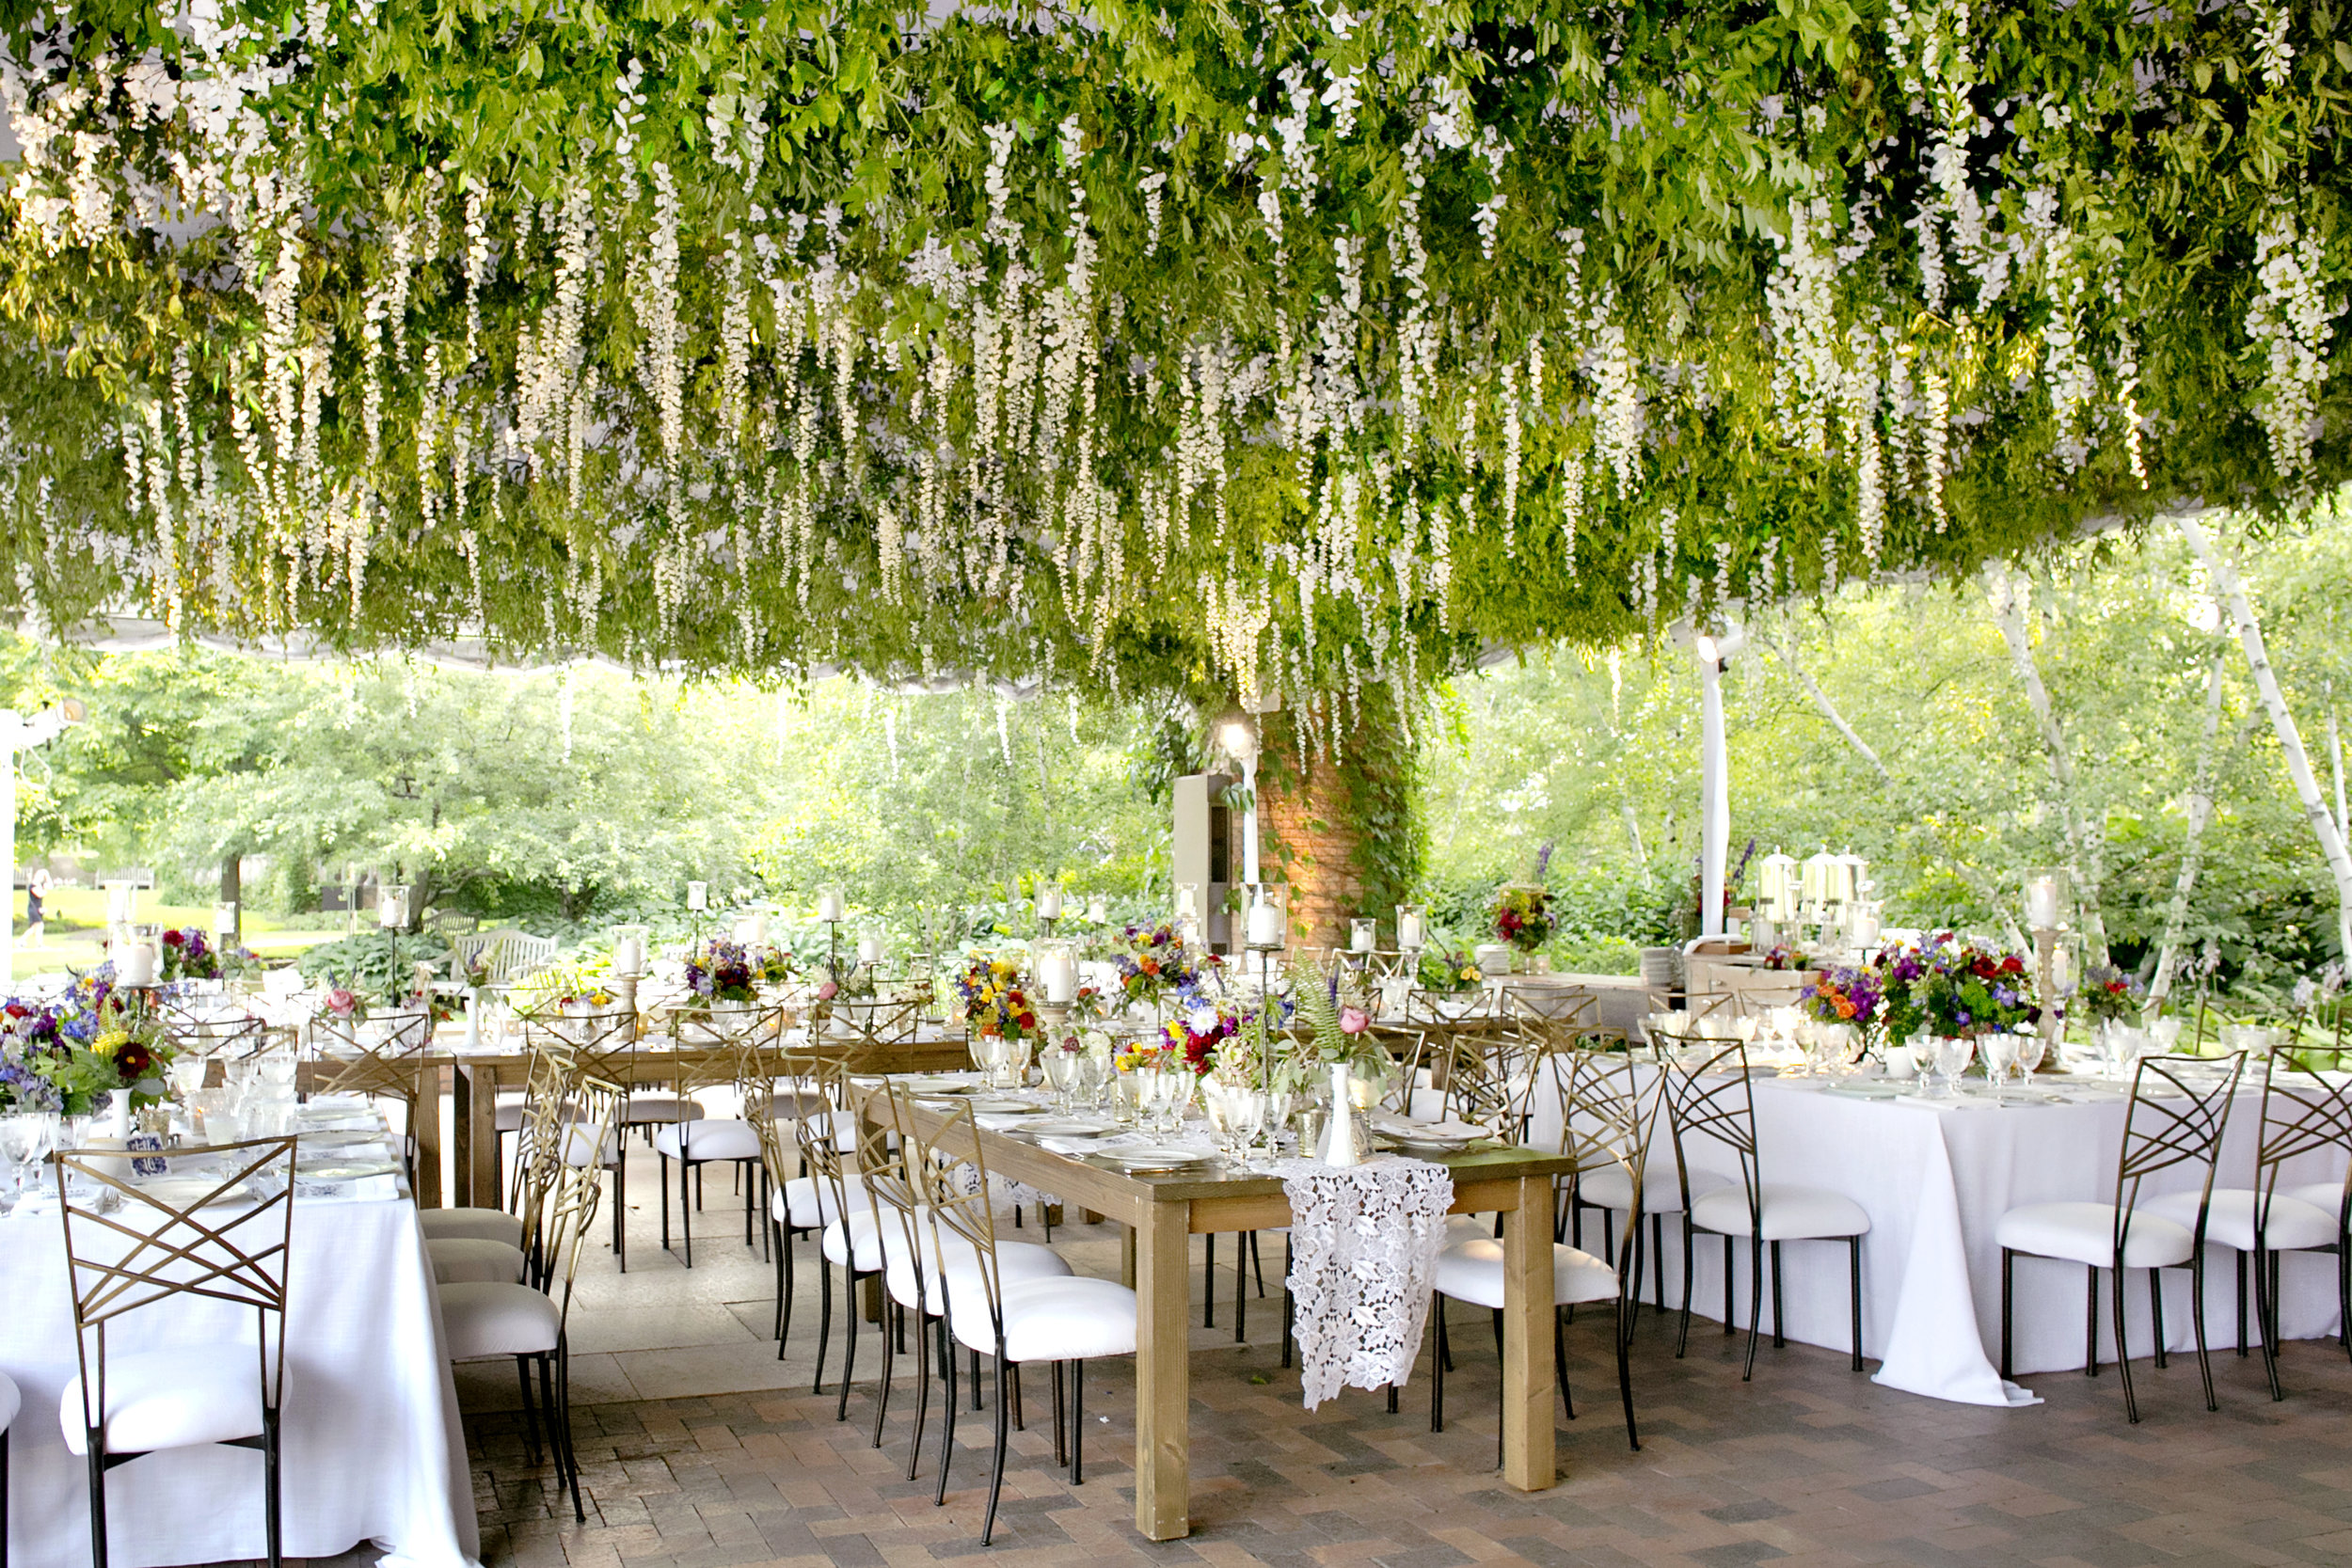 chicago botanic gardens-garden weddings-organic-bliss weddings and events.jpg